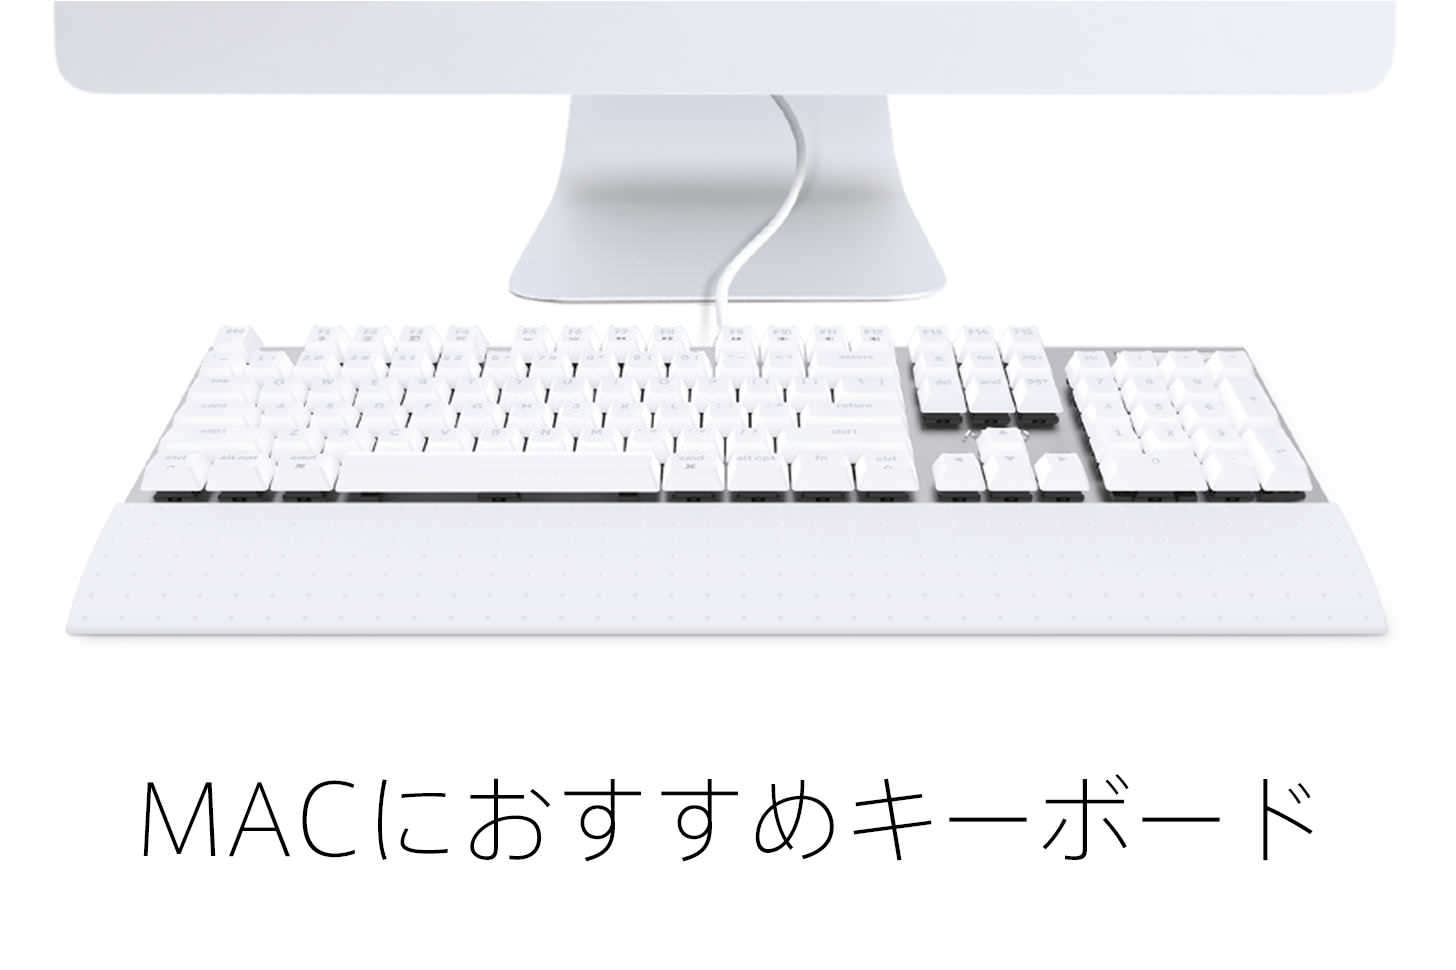 Mac keyboard 1